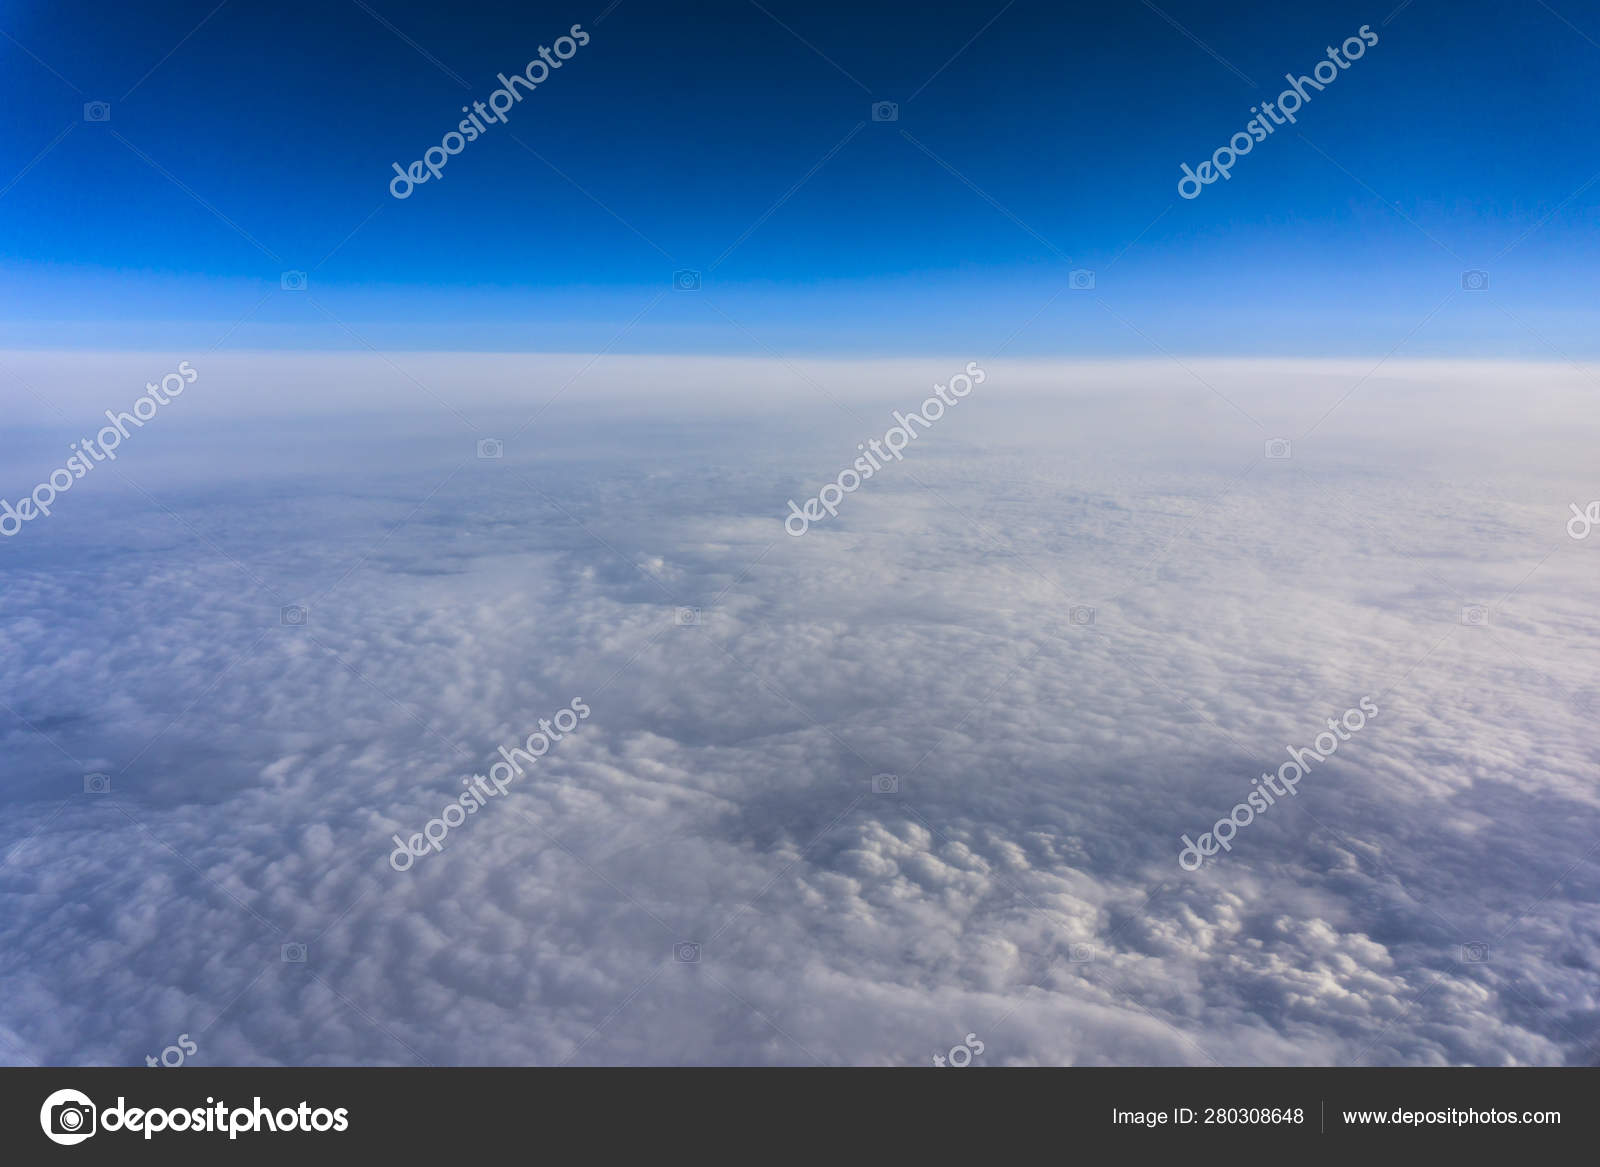 Above clouds, view from pilot cabine airplane. Blue sky, white clouds with magic and soft sun light.